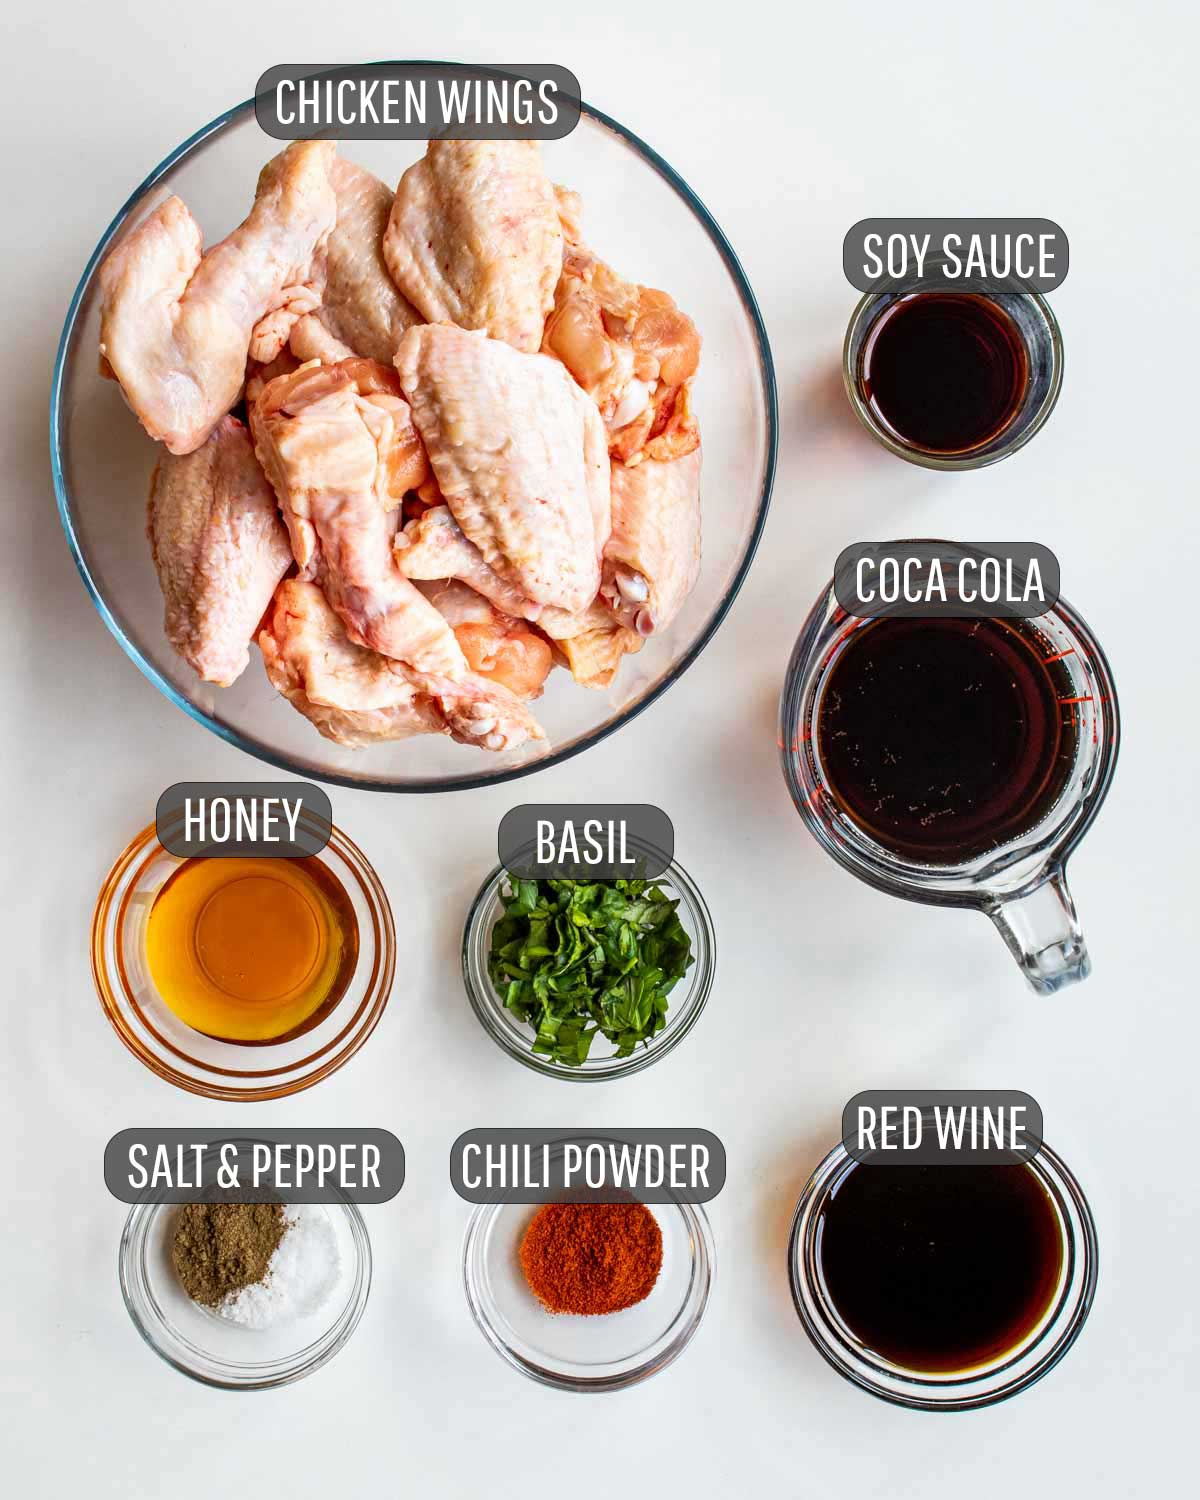 overhead shot of ingredients needed to make coca cola wings.